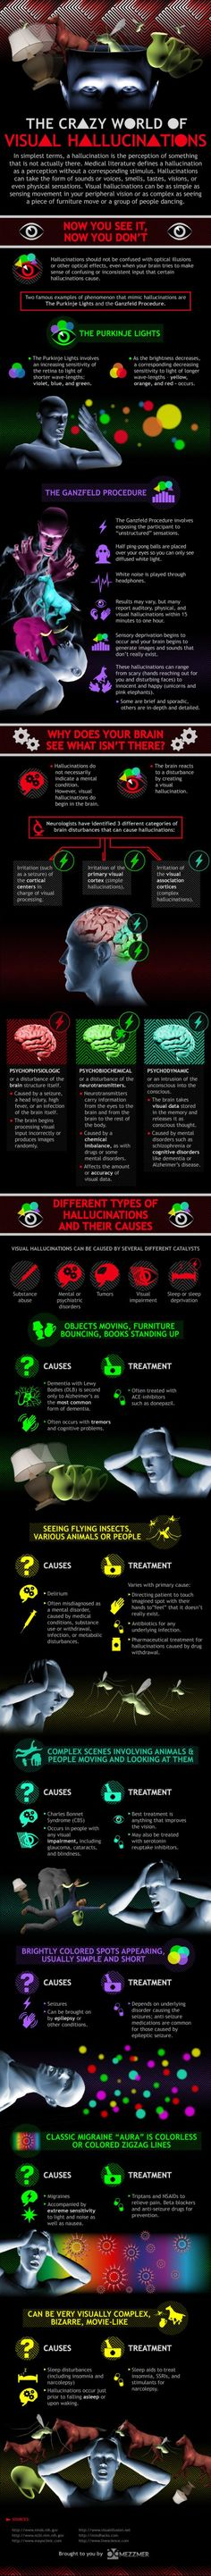 The crazy world of visual hallucinations (Infographic) | ScienceDump